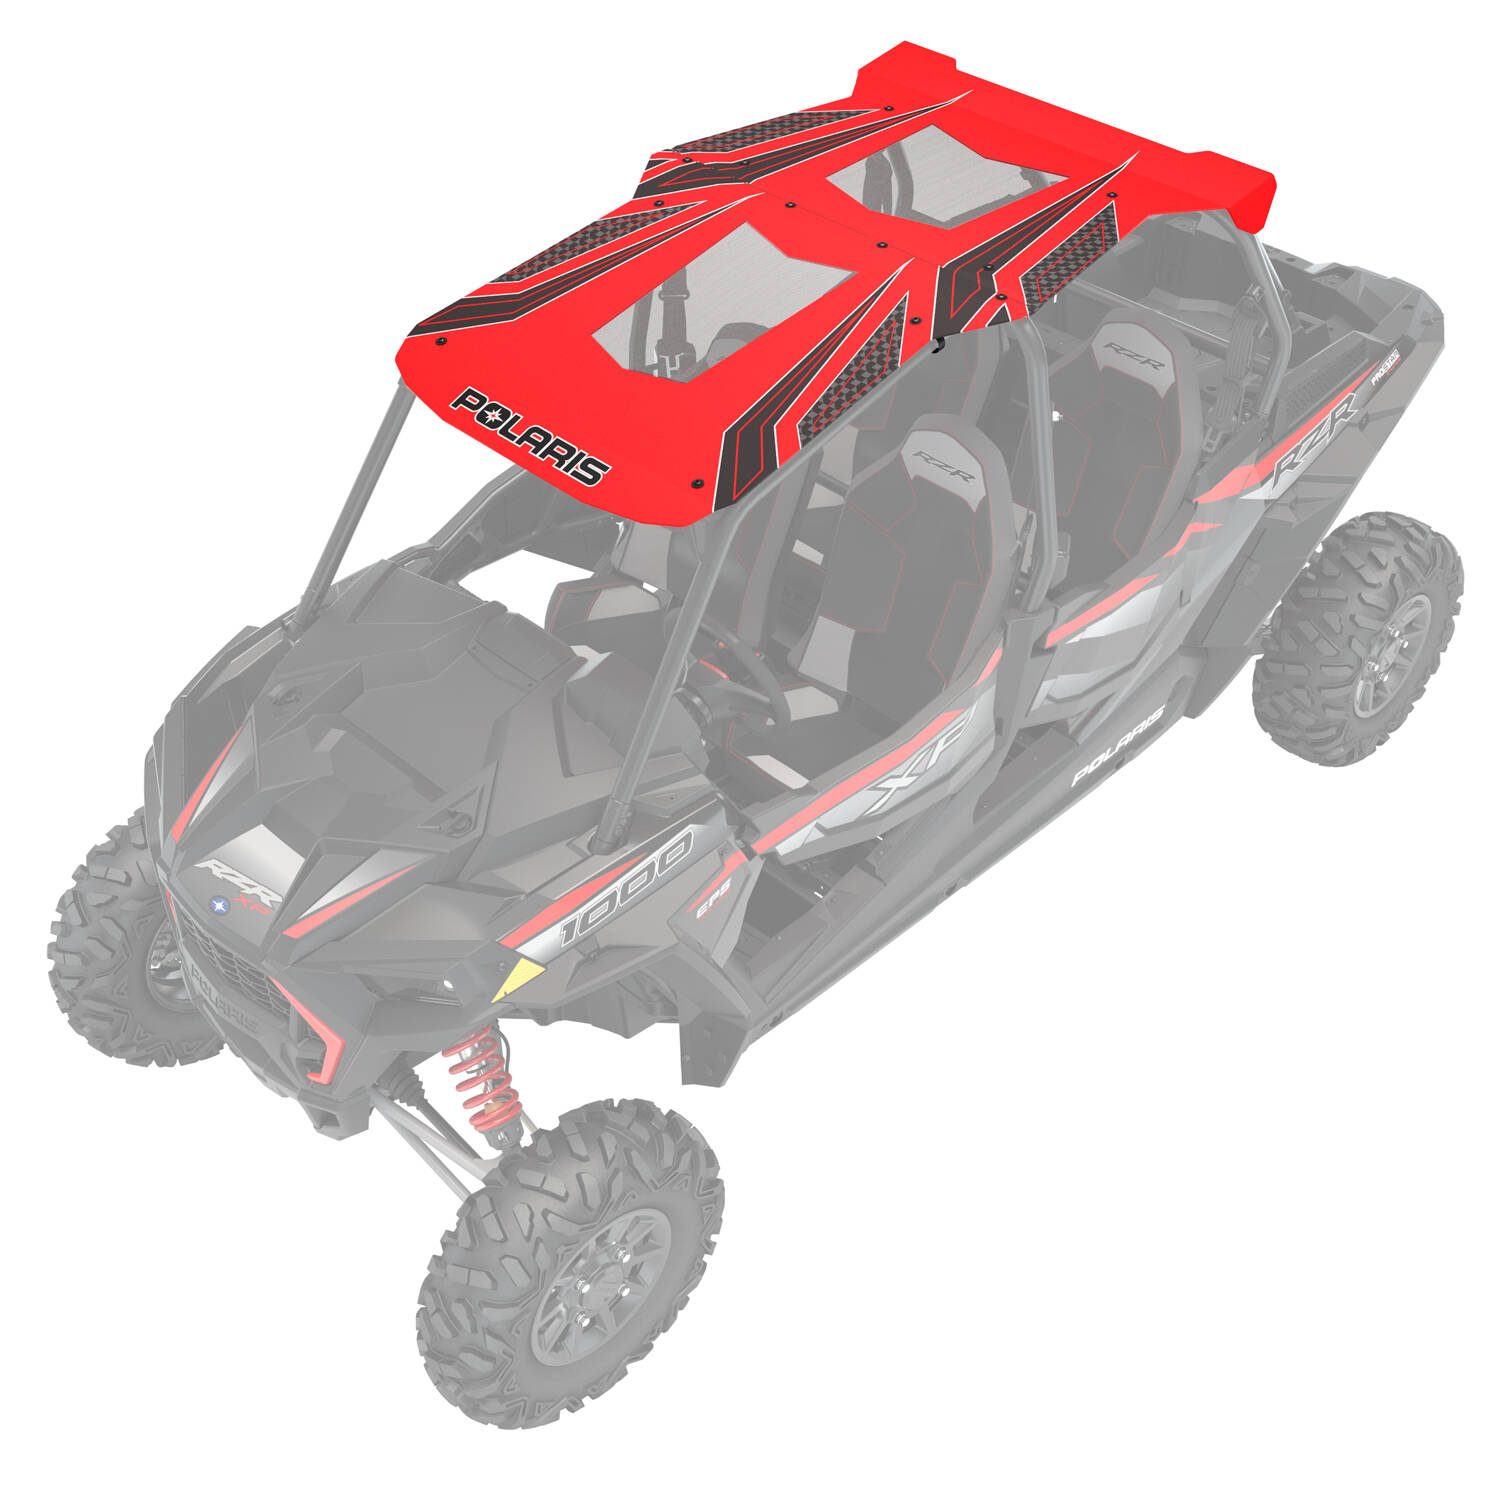 4-Seat Graphic Sport Roof- Red